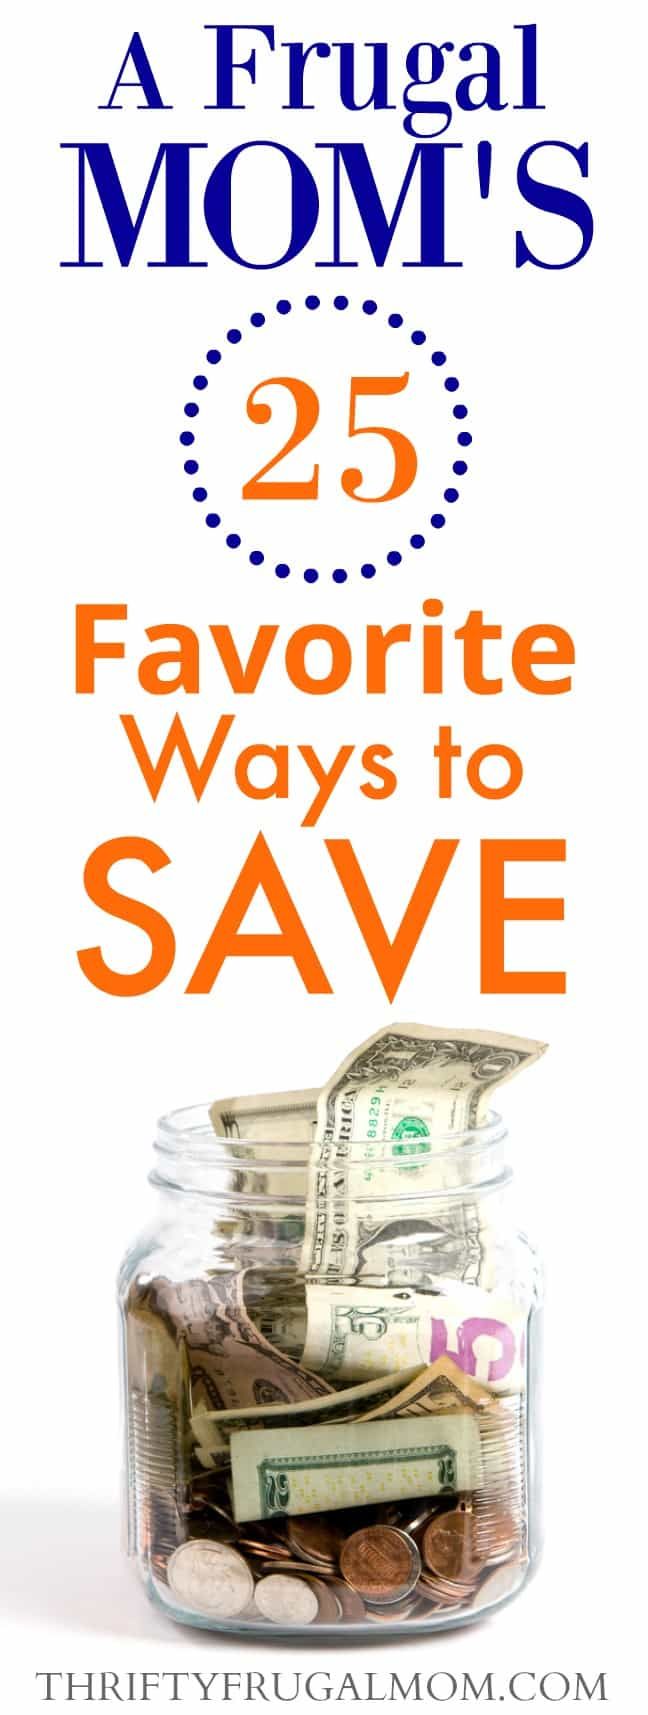 frugal mom's favorite ways to save money